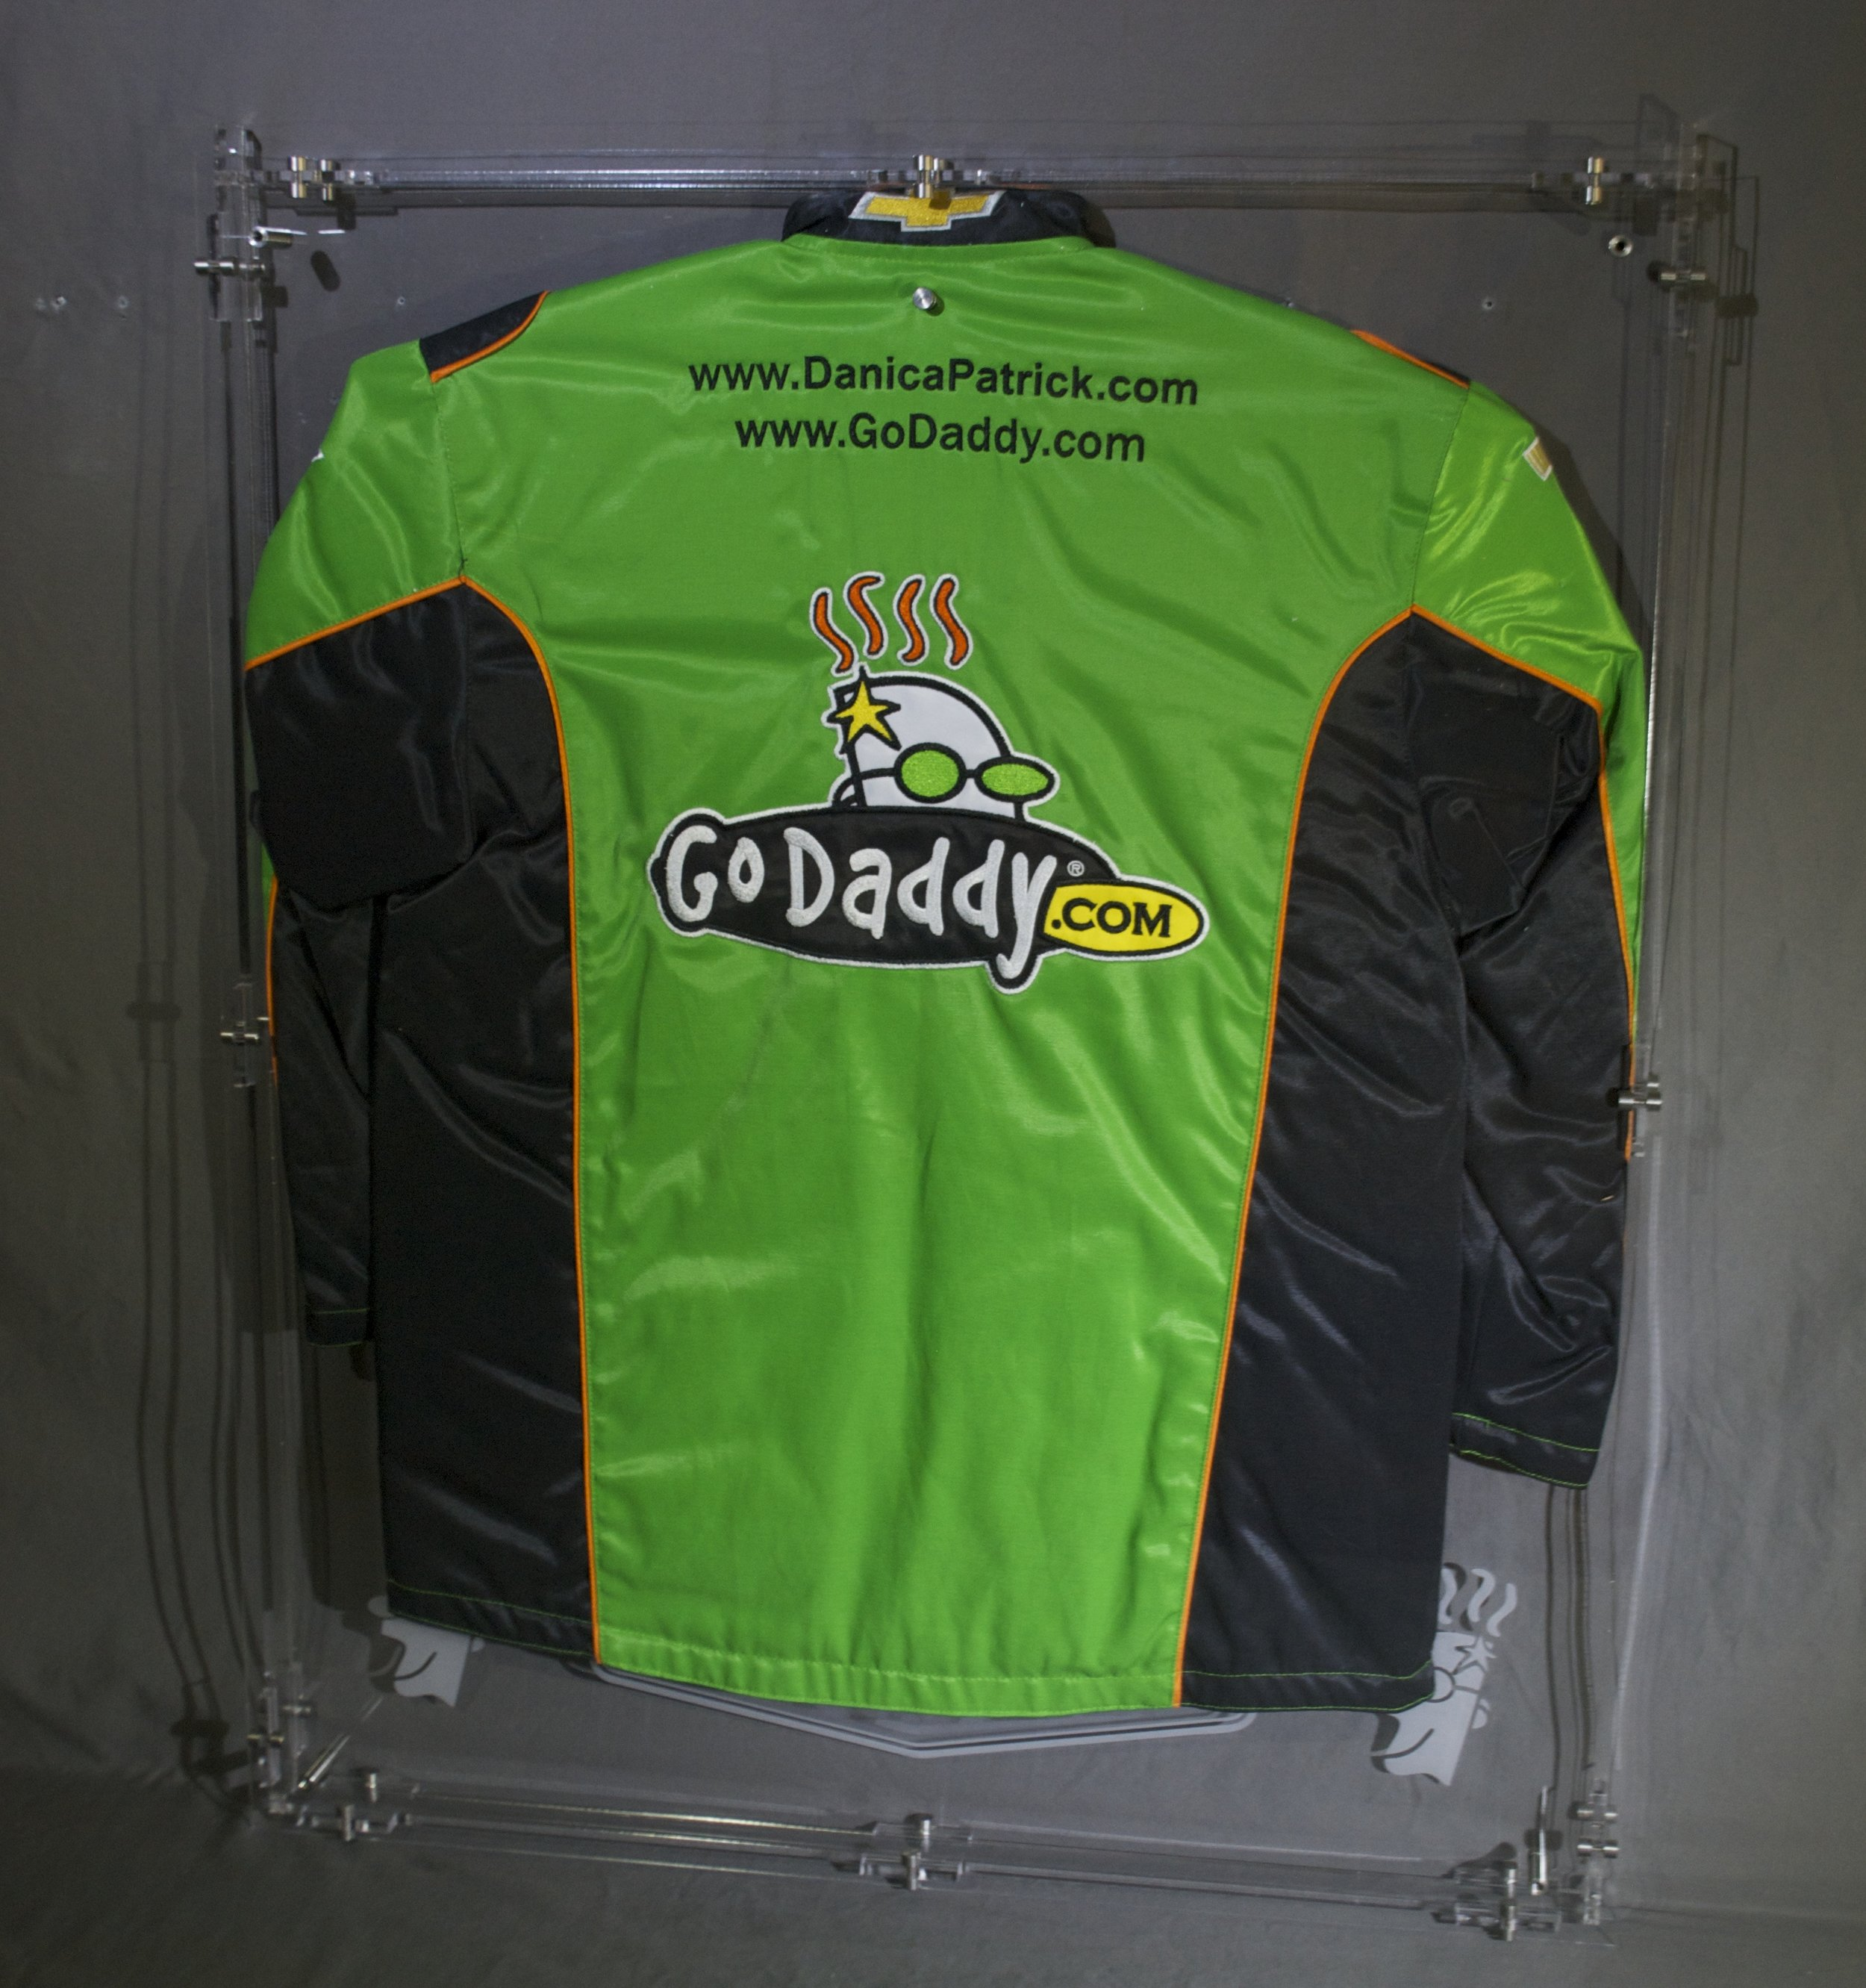 """2-sided jersey case - 28""""x 40""""x 2.5"""", custom-etched per customer, clear case mounts from either side or hangs mid-room from tabs built into top of case.  Contact us for pricing information."""